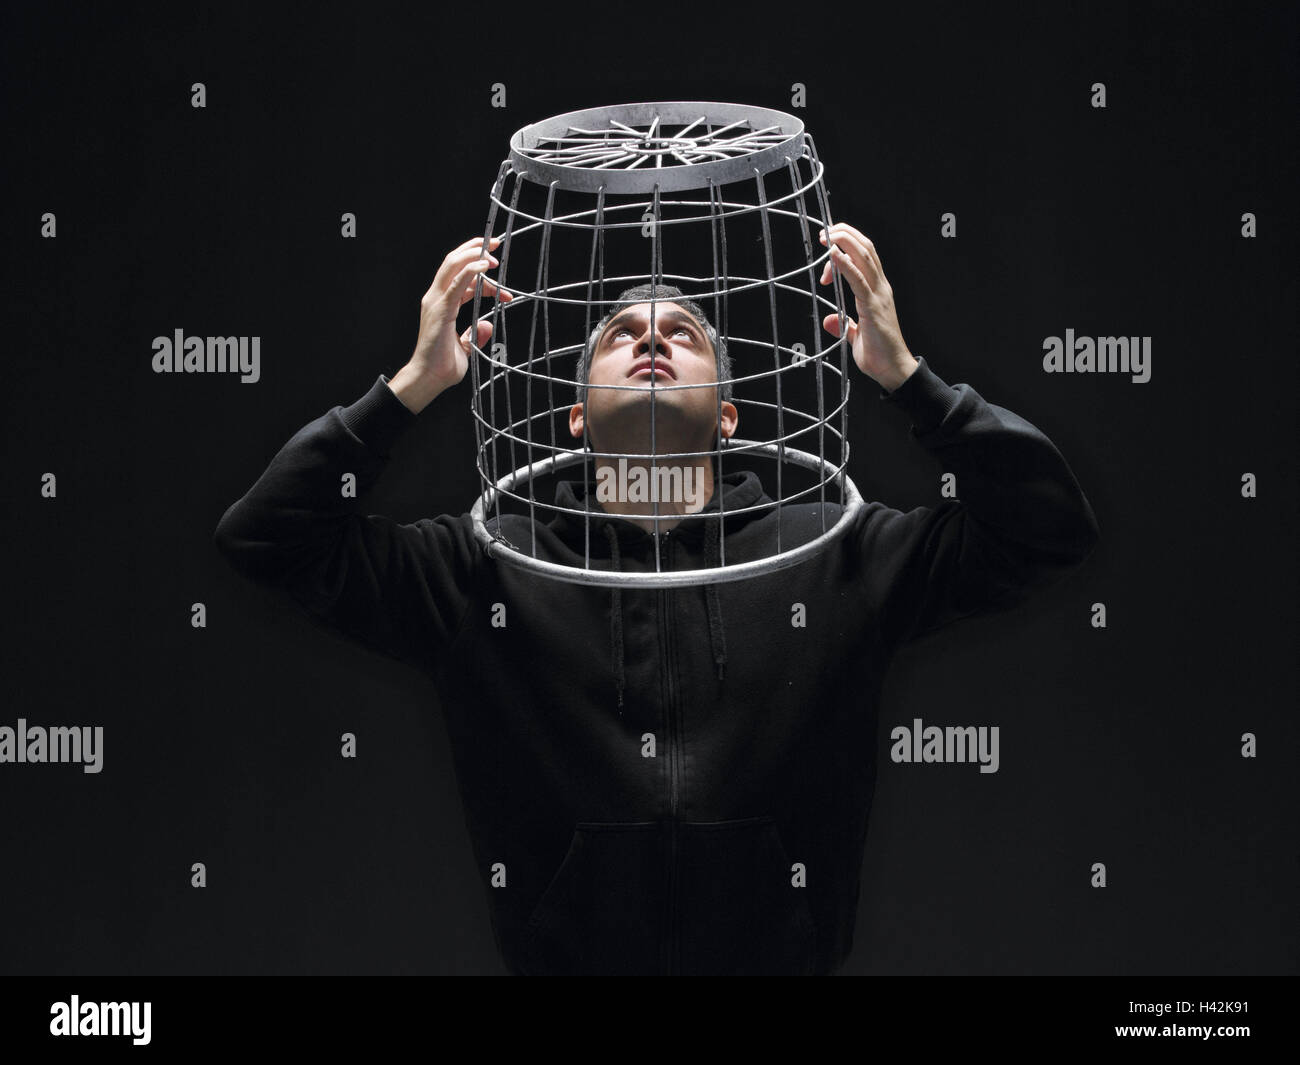 Man, 'card cage', caught, desperation, hopelessness, portrait, grid, basket, head, thought, not free, locked - Stock Image